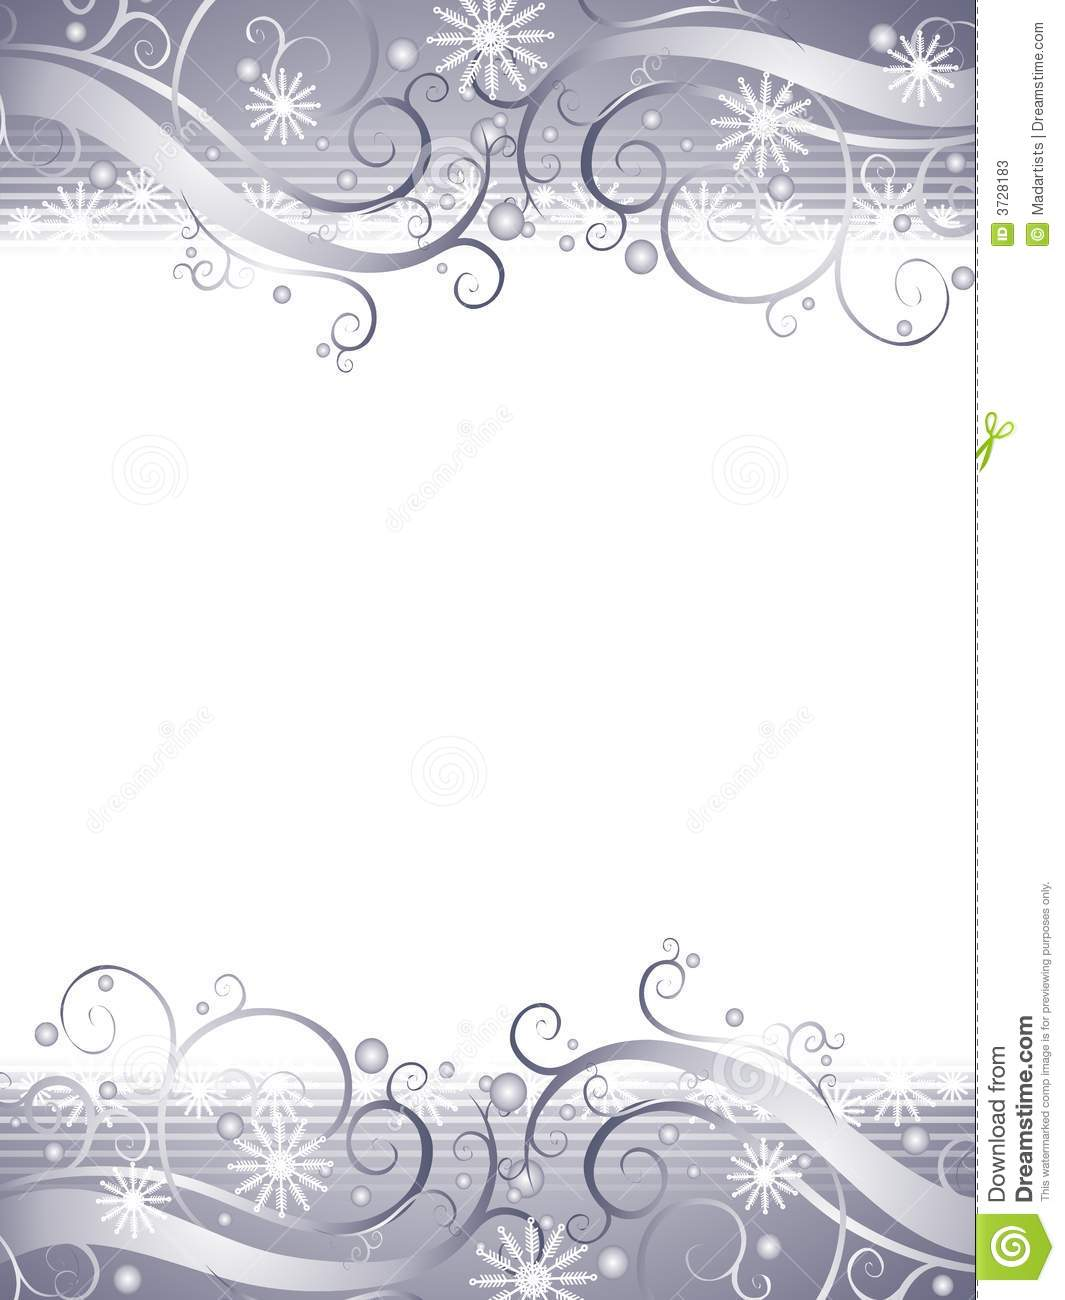 ... of decorative wispy swirls and snowflakes with silver gradient colors